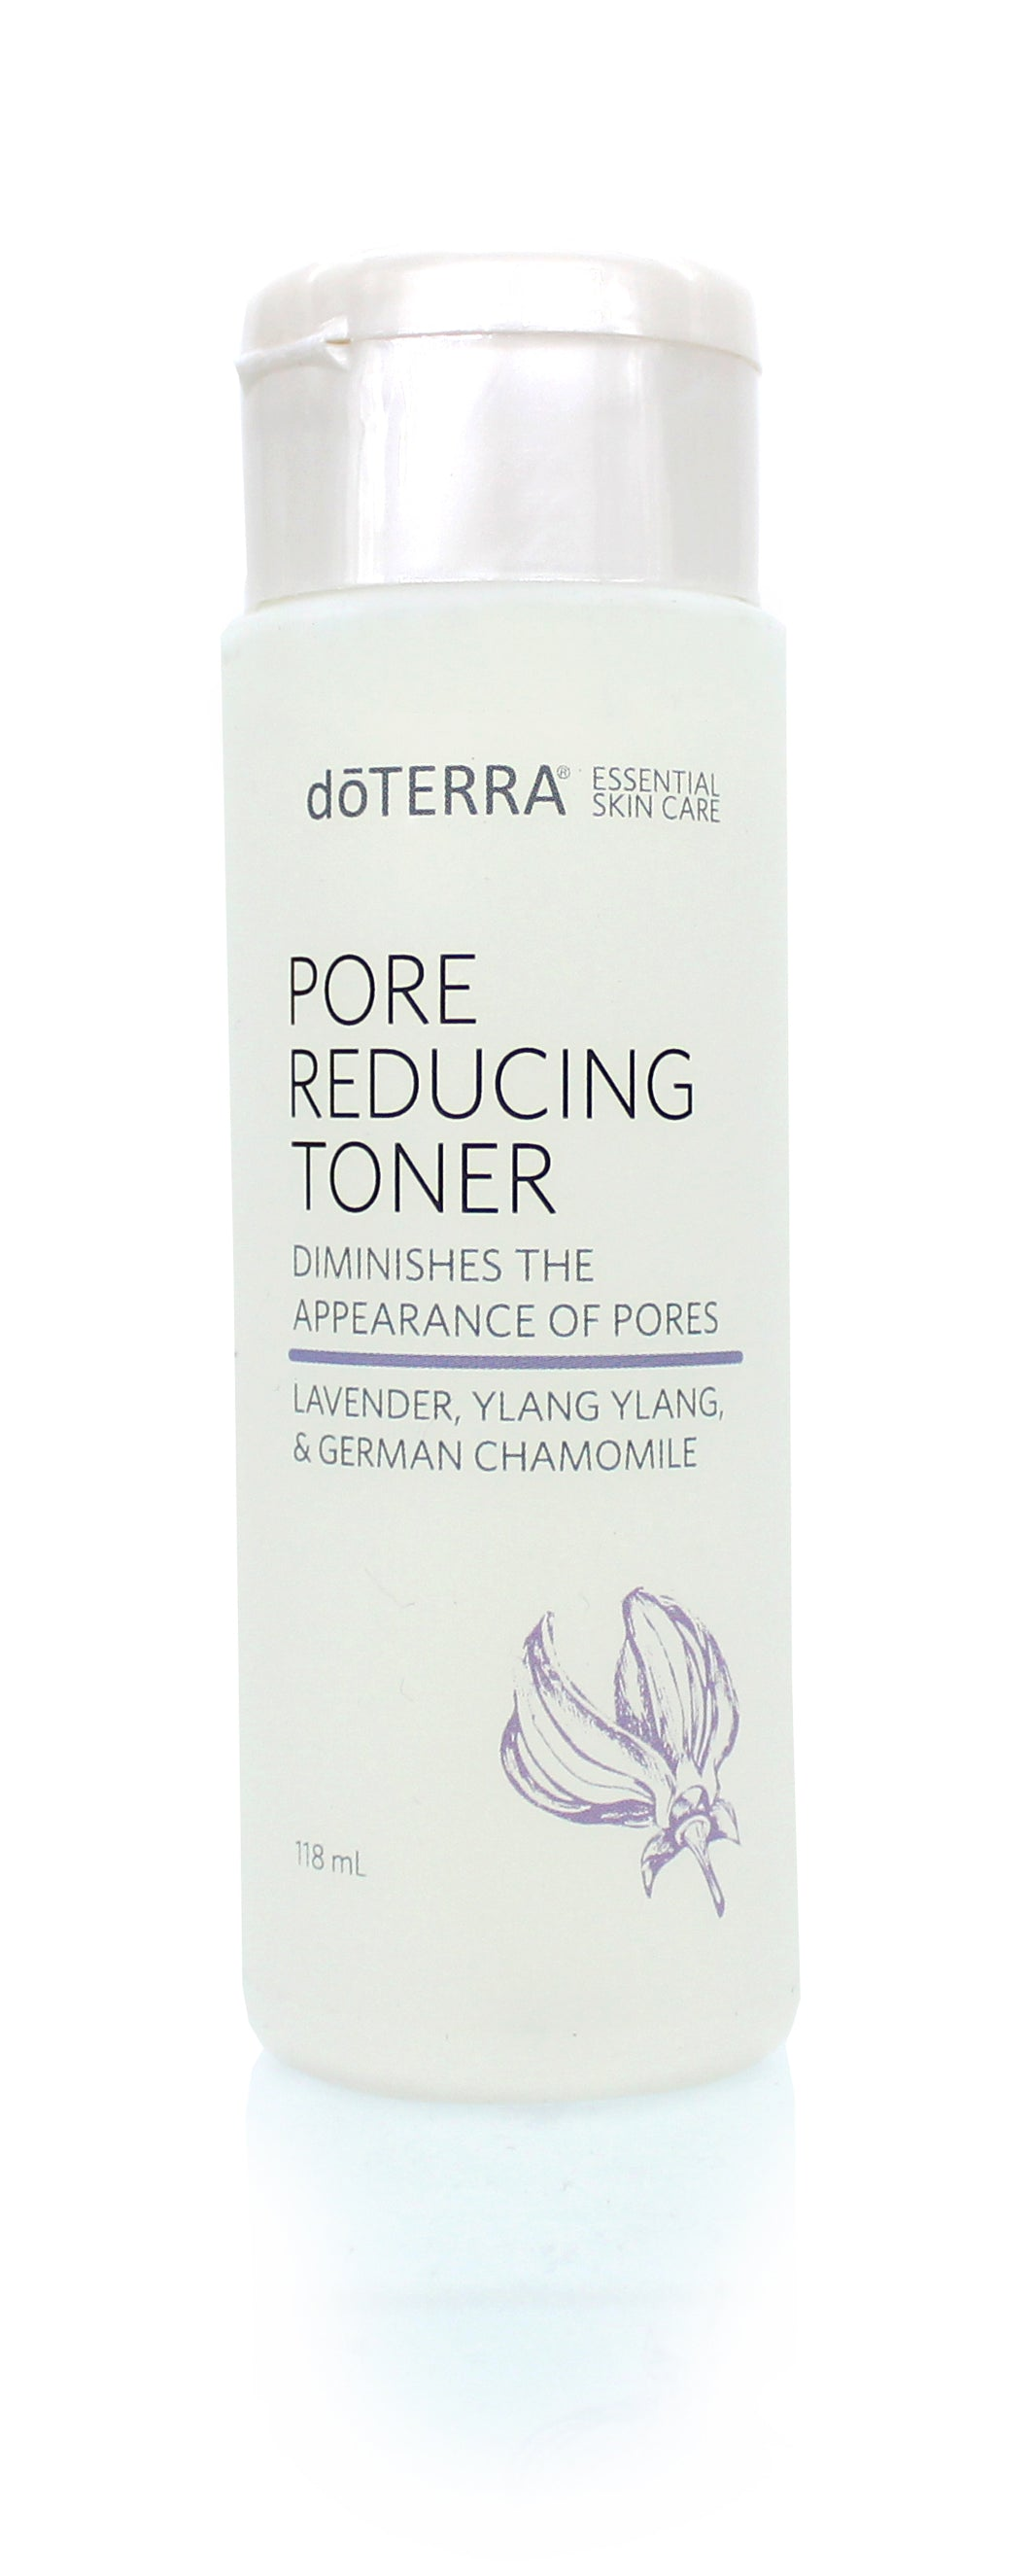 Pore Reducing Toner